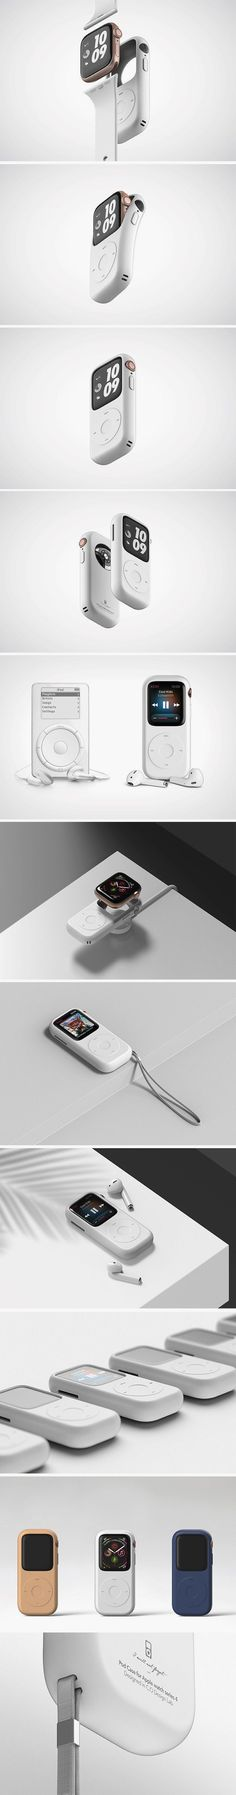 Joyce Kang and C.O Design Lab's Pod Case gives the Apple Watch a retro twist. The watch's screen roughly matches the screen size found in classic iPod Nanos, and its body is only slightly thicker. Gadgets And Gizmos, Tech Gadgets, Cool Gadgets, Yanko Design, Design Lab, Design Ideas, Accessoires Iphone, New Apple Watch, Ipod Nano